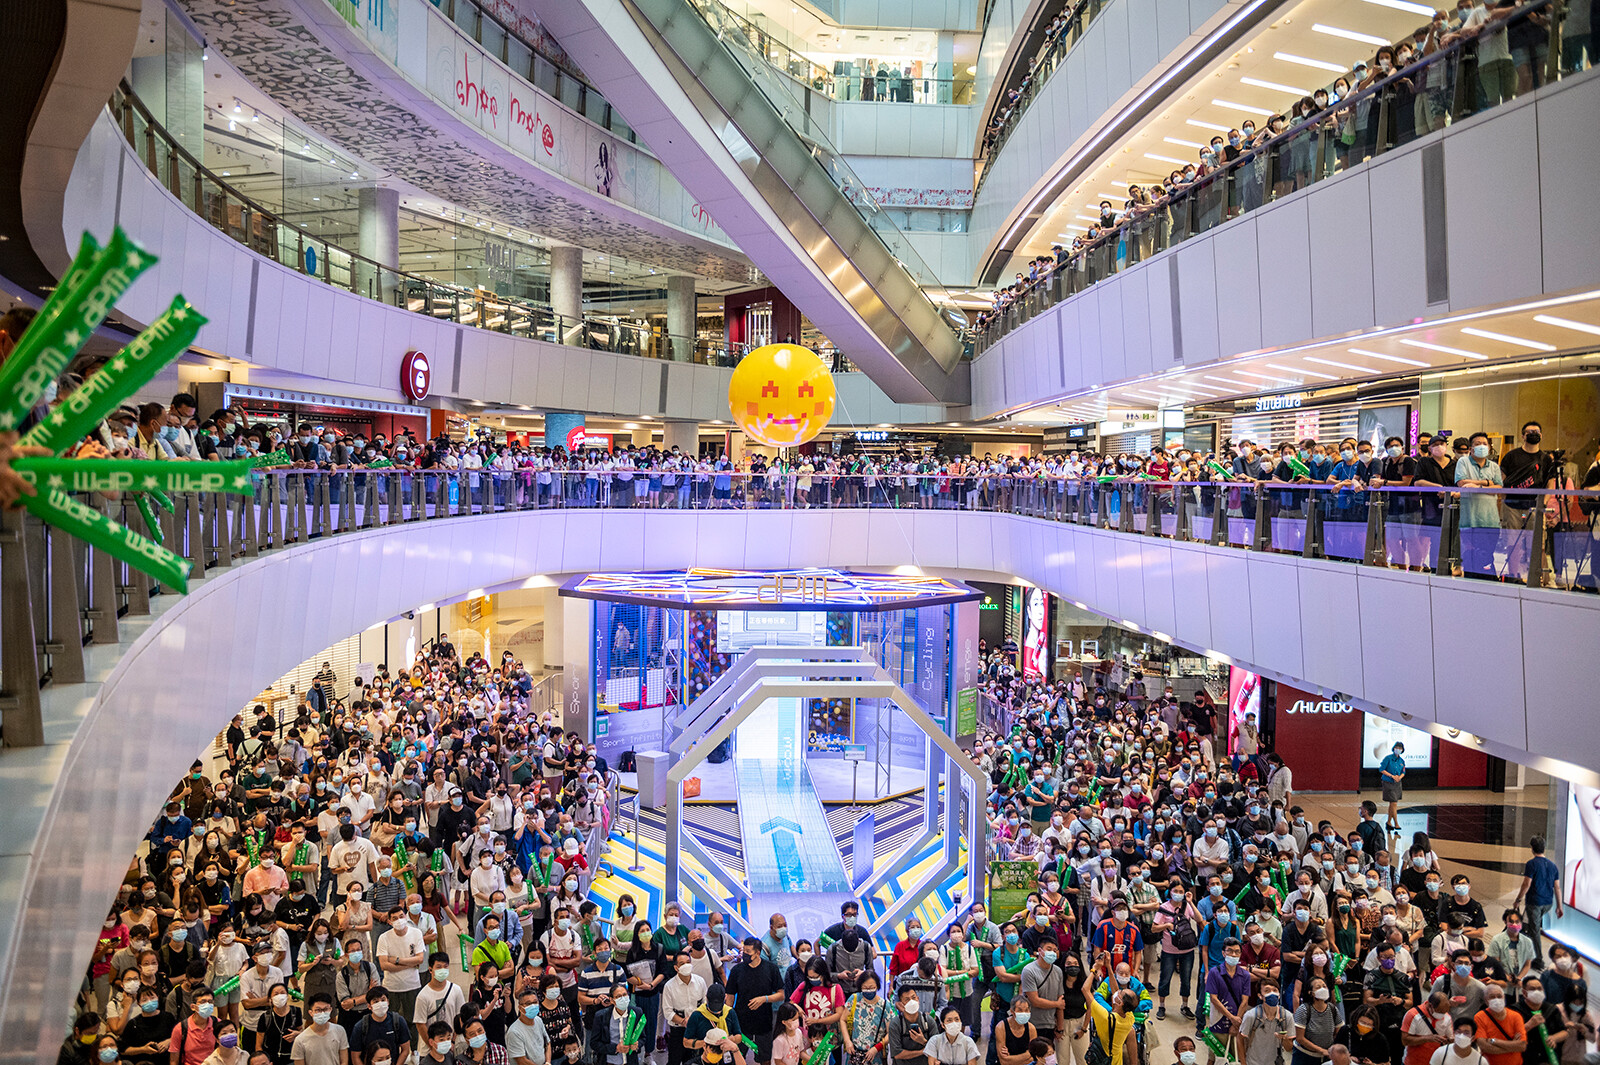 <i>Vernon Yuen/NurPhoto/AP</i><br/>People are shown at a shopping mall in Hong Kong watching Siobhan Haughey swim in the 100-meter freestyle Olympics final on Friday. Hong Kong police have arrested a man after he allegedly booed the Chinese national anthem while watching an Olympics award ceremony inside a shopping mall..